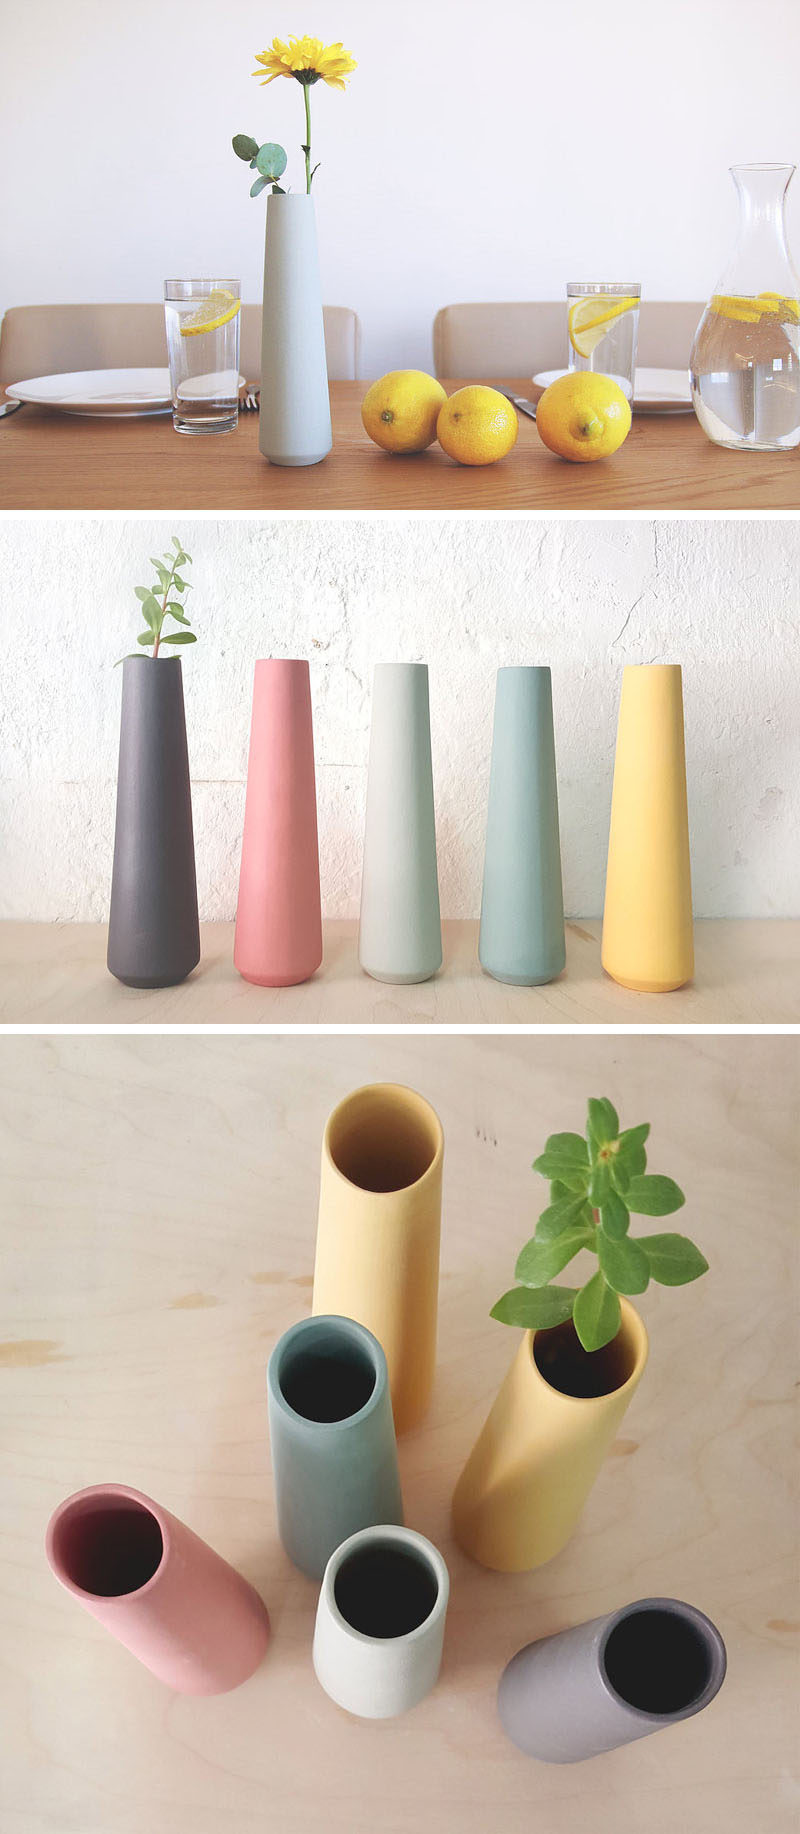 These tall, ceramic, single flower vases have a simple minimalist design, come in a range of pastel colors, and would suit any spring decor theme.